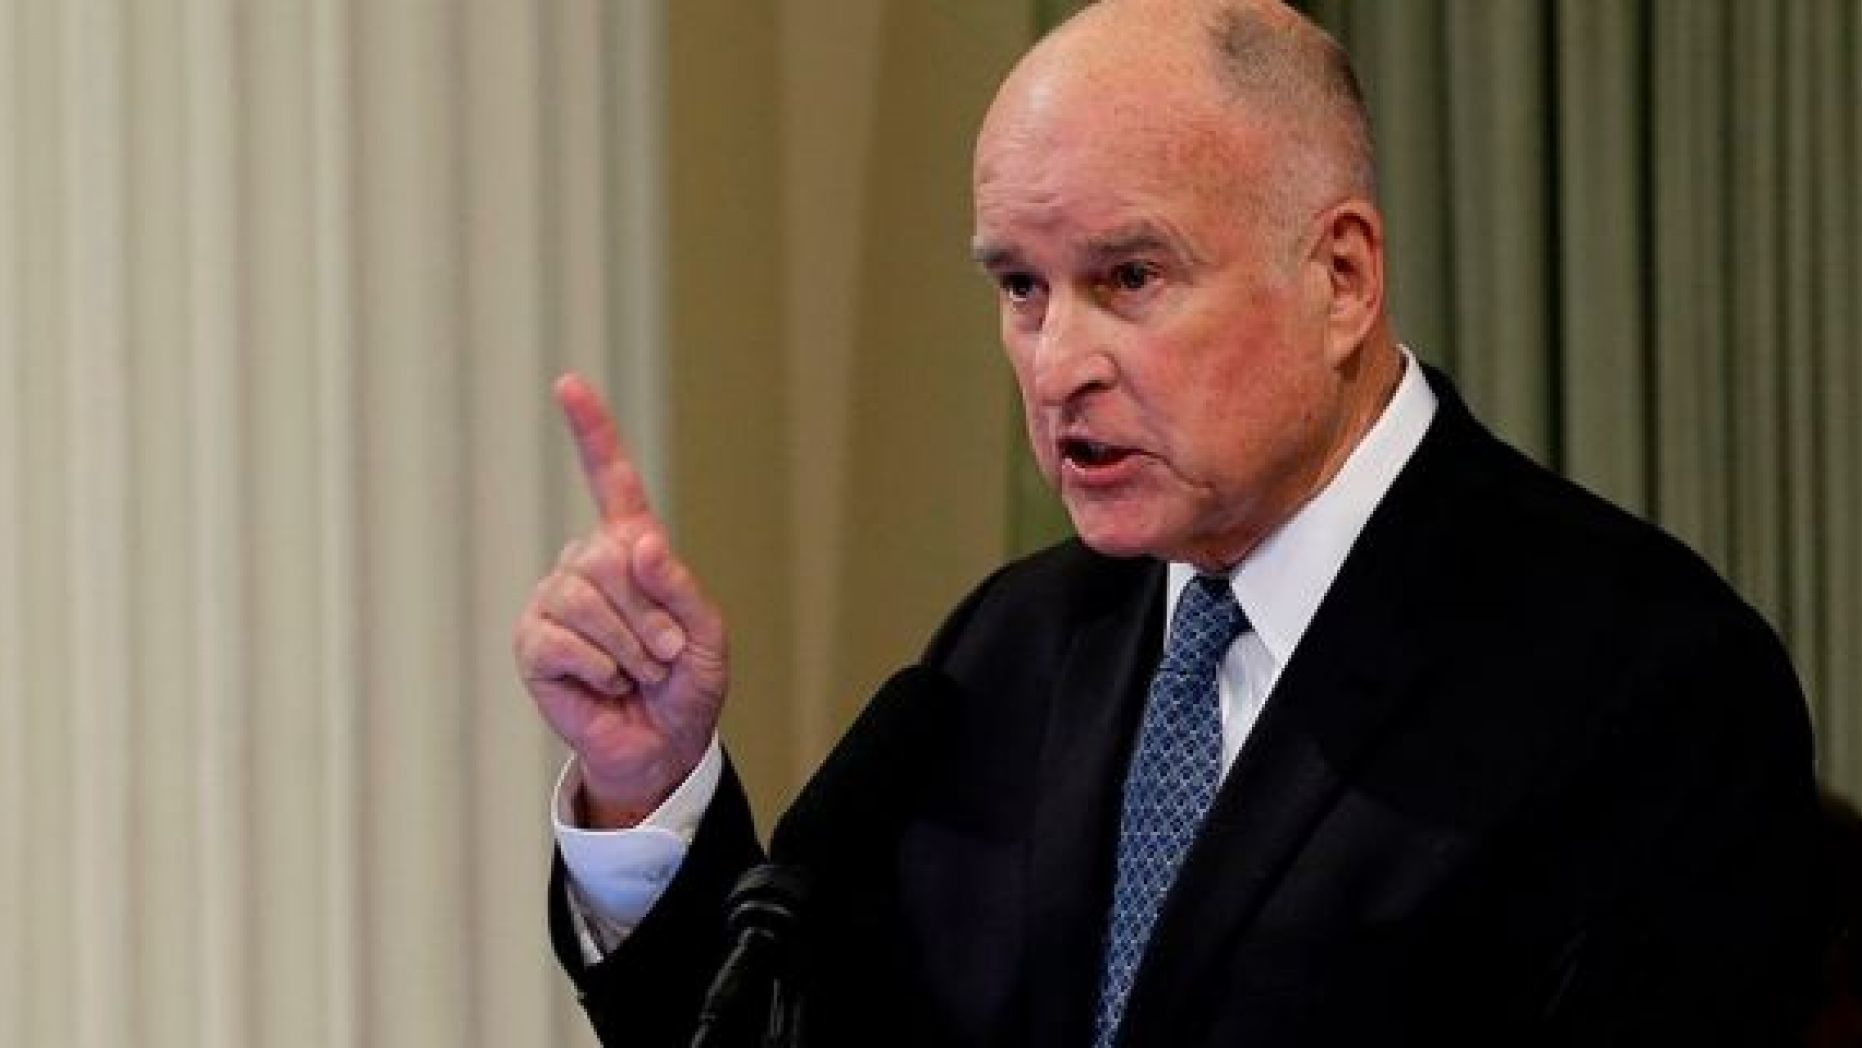 How close to doomsday? Just ask former California Gov. Jerry Brown